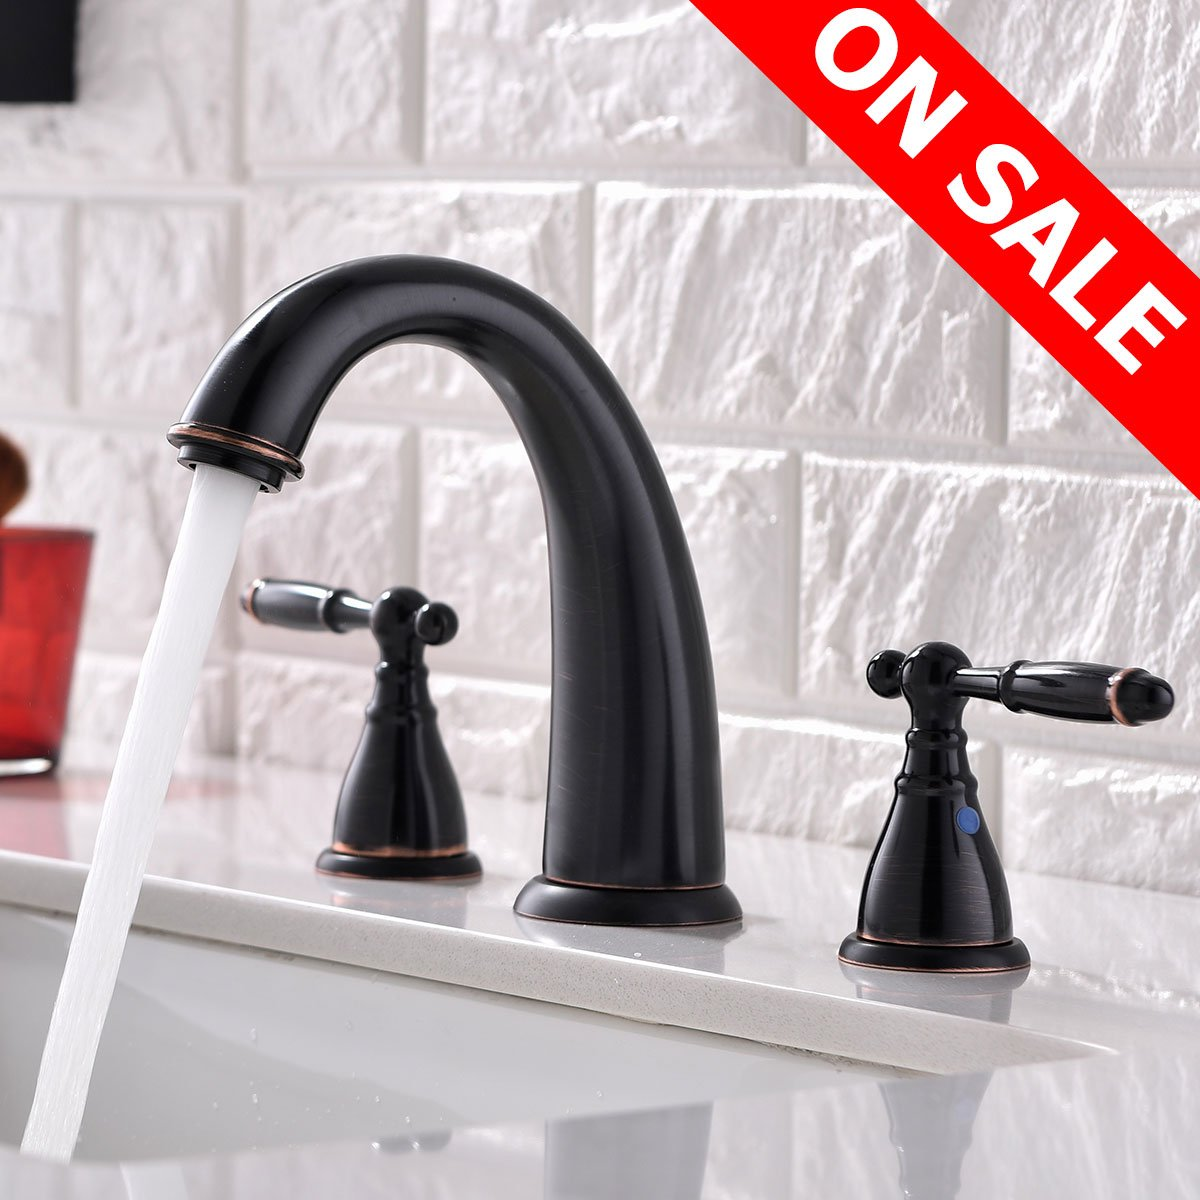 KINGO HOME Antique Durable Two Handles Three Holes Oil Rubbed Bronze Widespread Bathroom Sink Faucet, Bathroom Faucet without Sink Drain Stopper